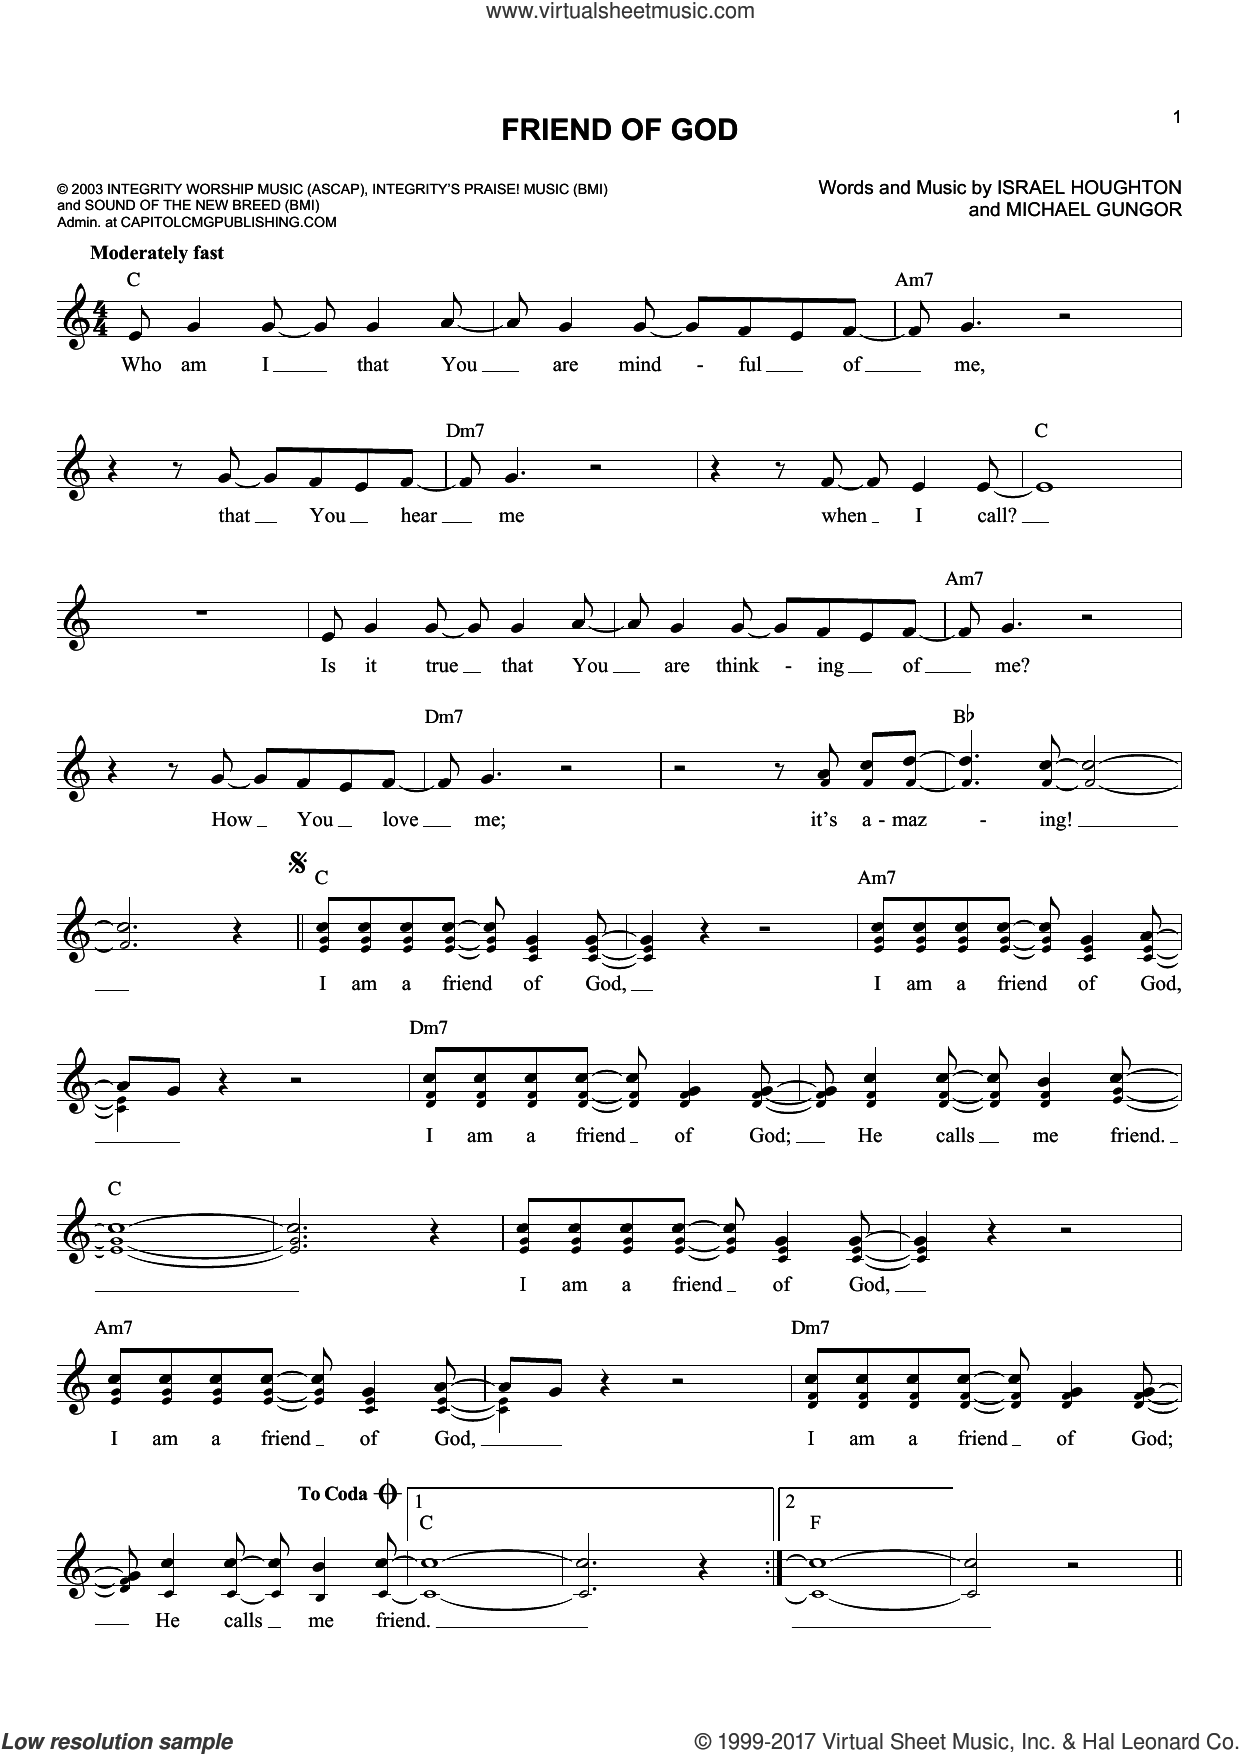 Friend Of God sheet music for voice and other instruments (fake book) by Michael Gungor and Israel Houghton, intermediate skill level